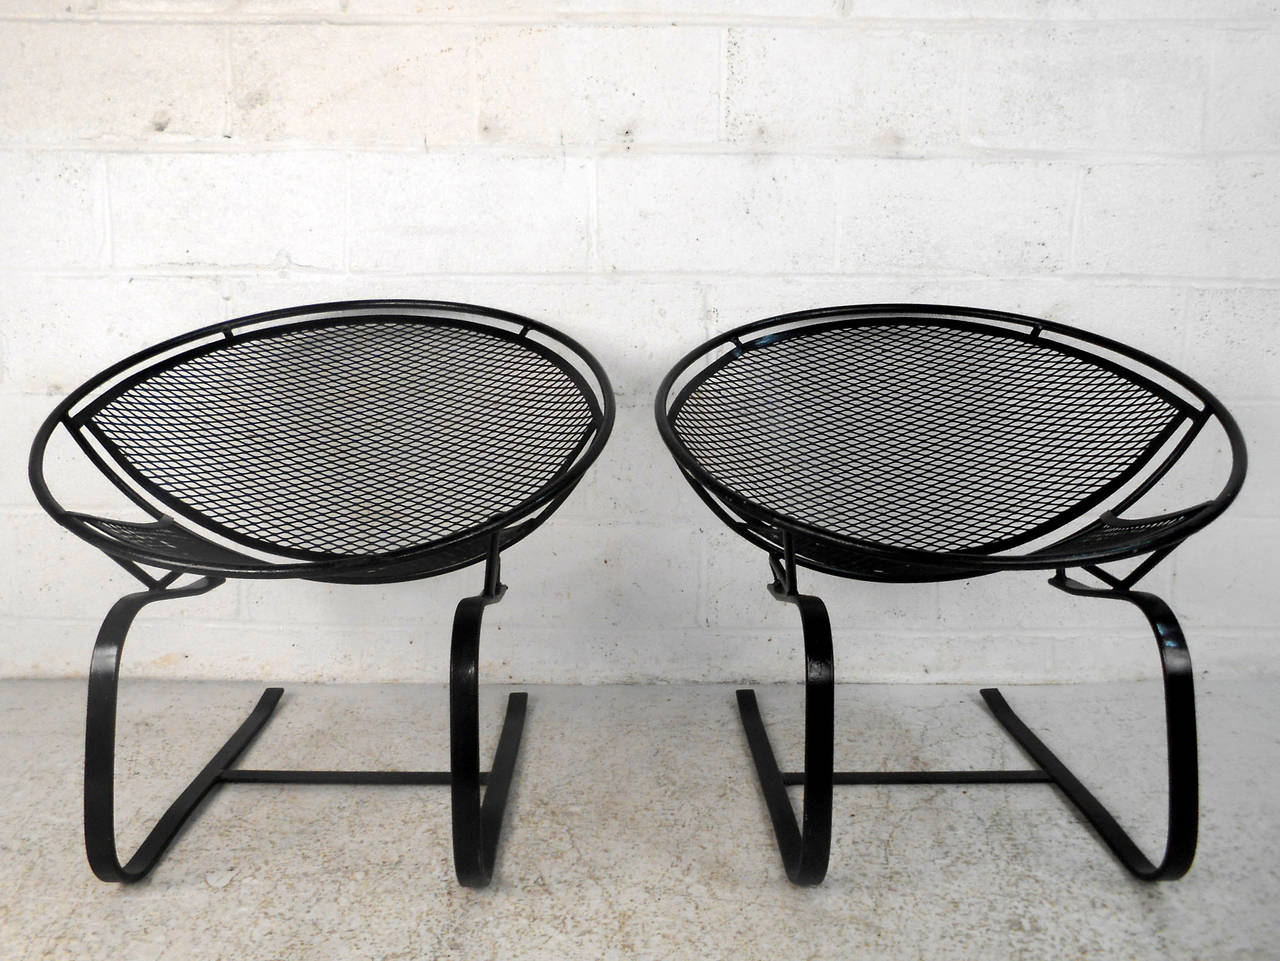 Pair Mid Century Modern Iron Cantilever Patio Chairs by Tempestini for Salter